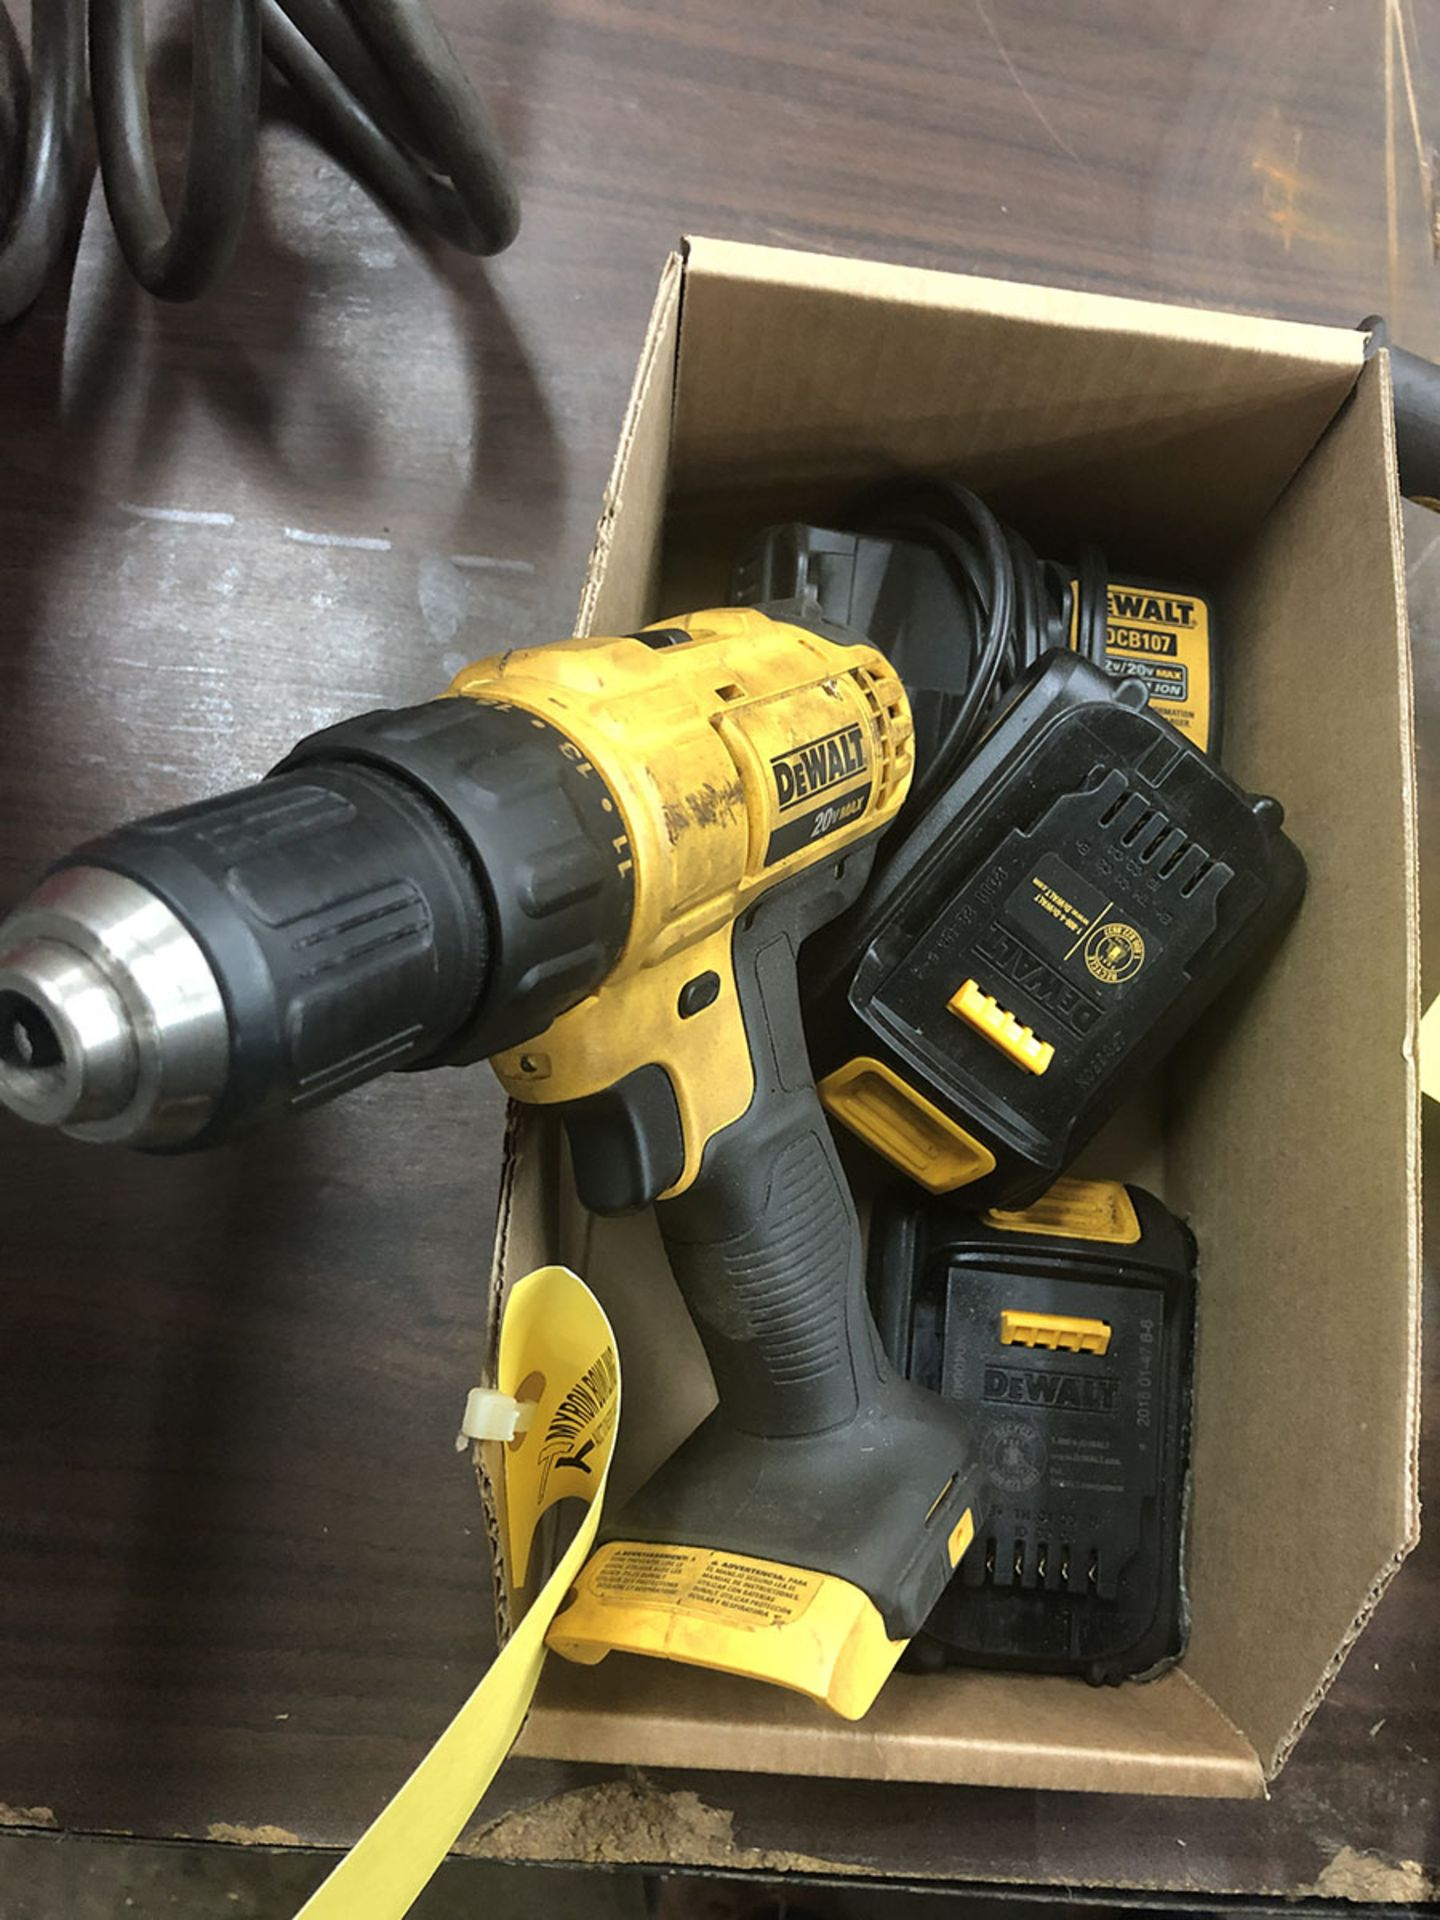 Lot 2 - DEWALT CORDLESS DRILL DCD771 WITH CHARGER AND (2) 12V BATTERIES